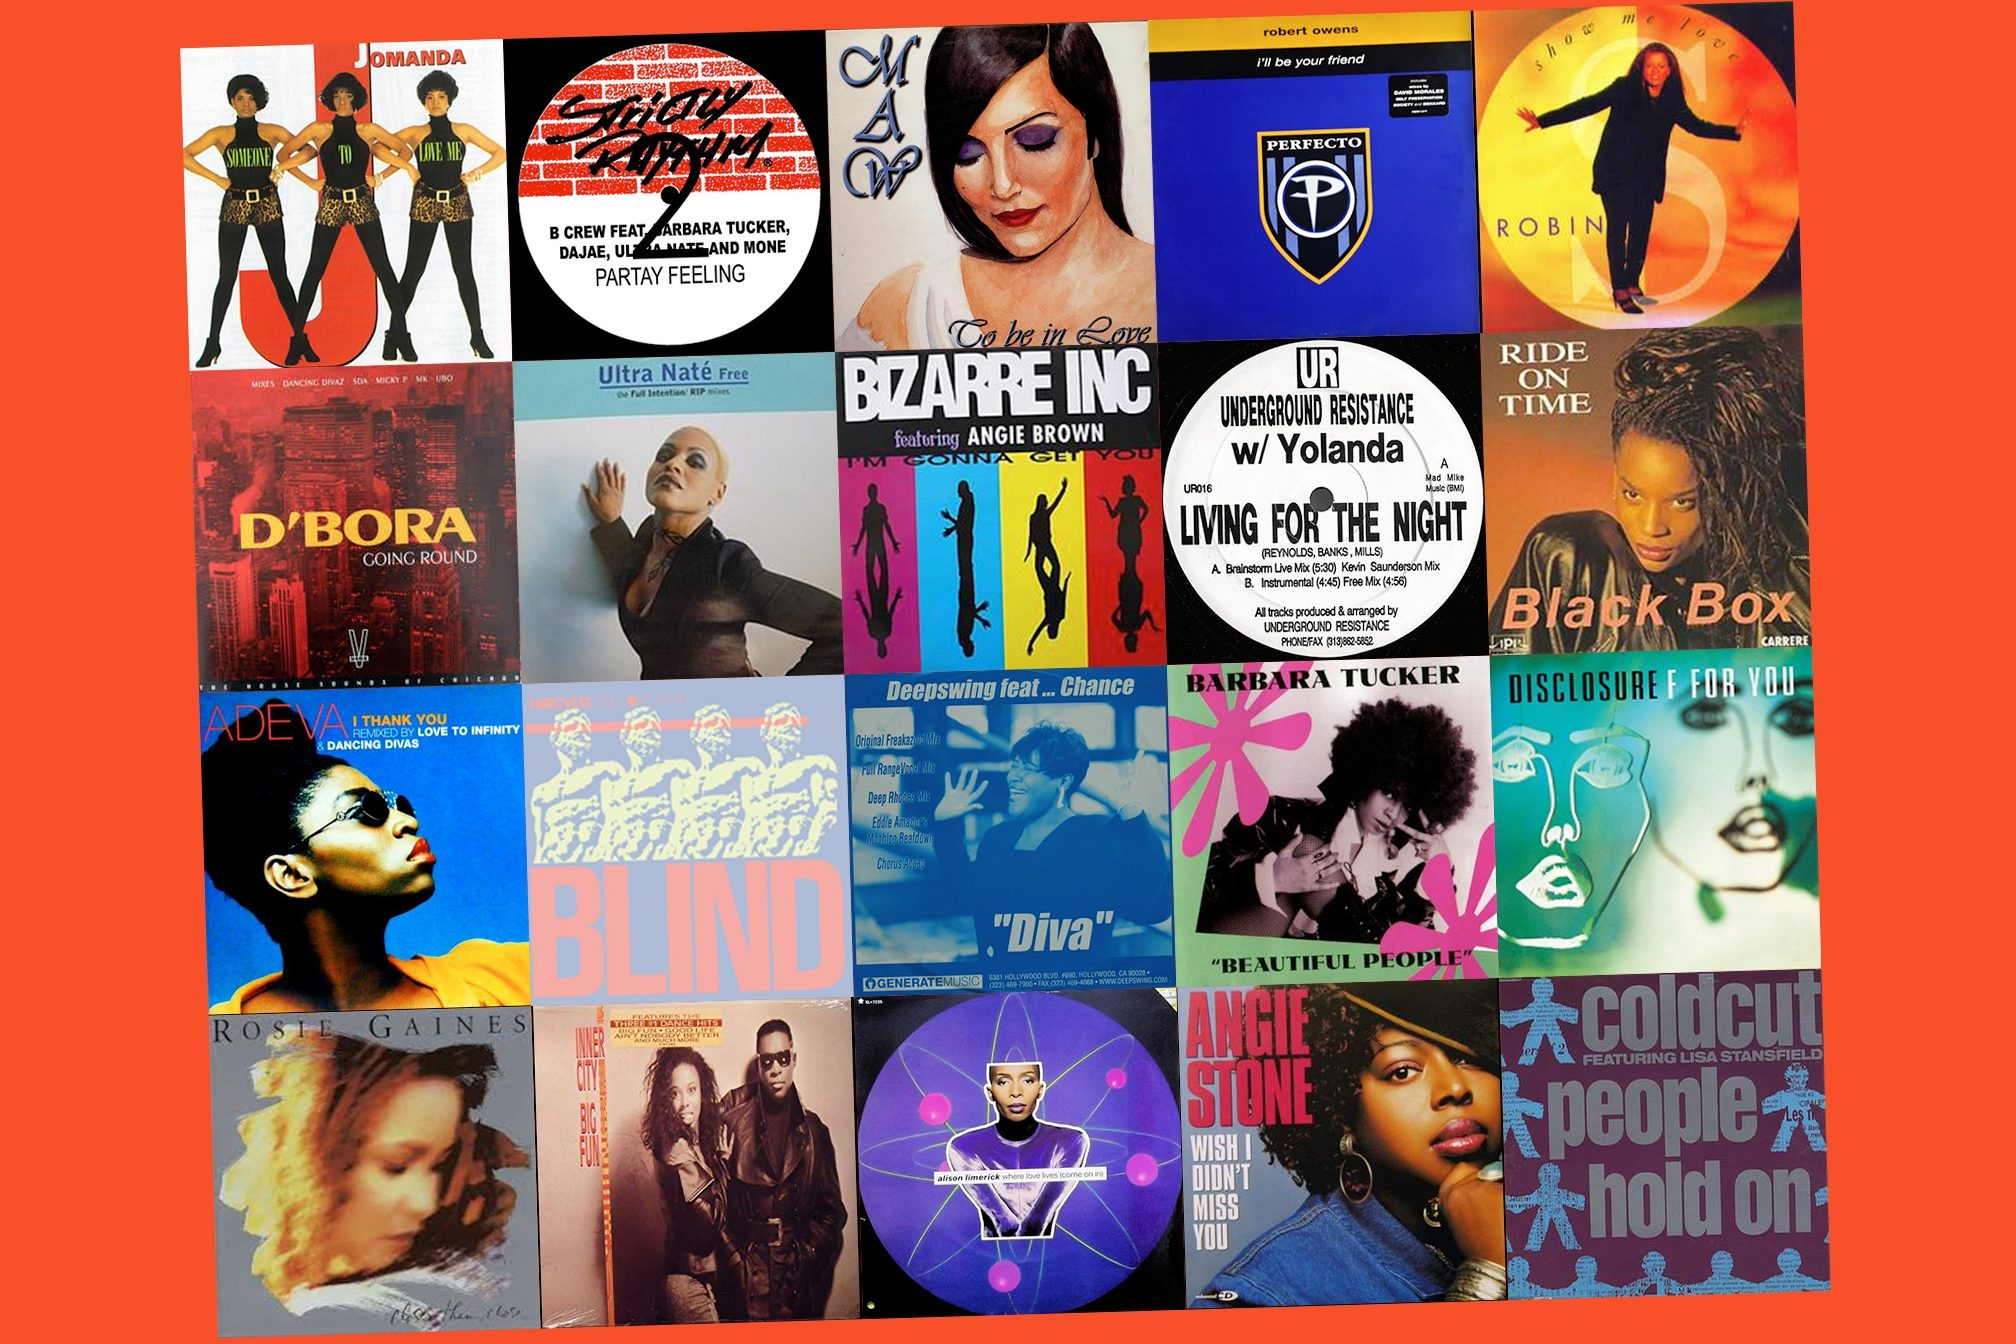 The 20 best diva house tracks - Lists - Mixmag